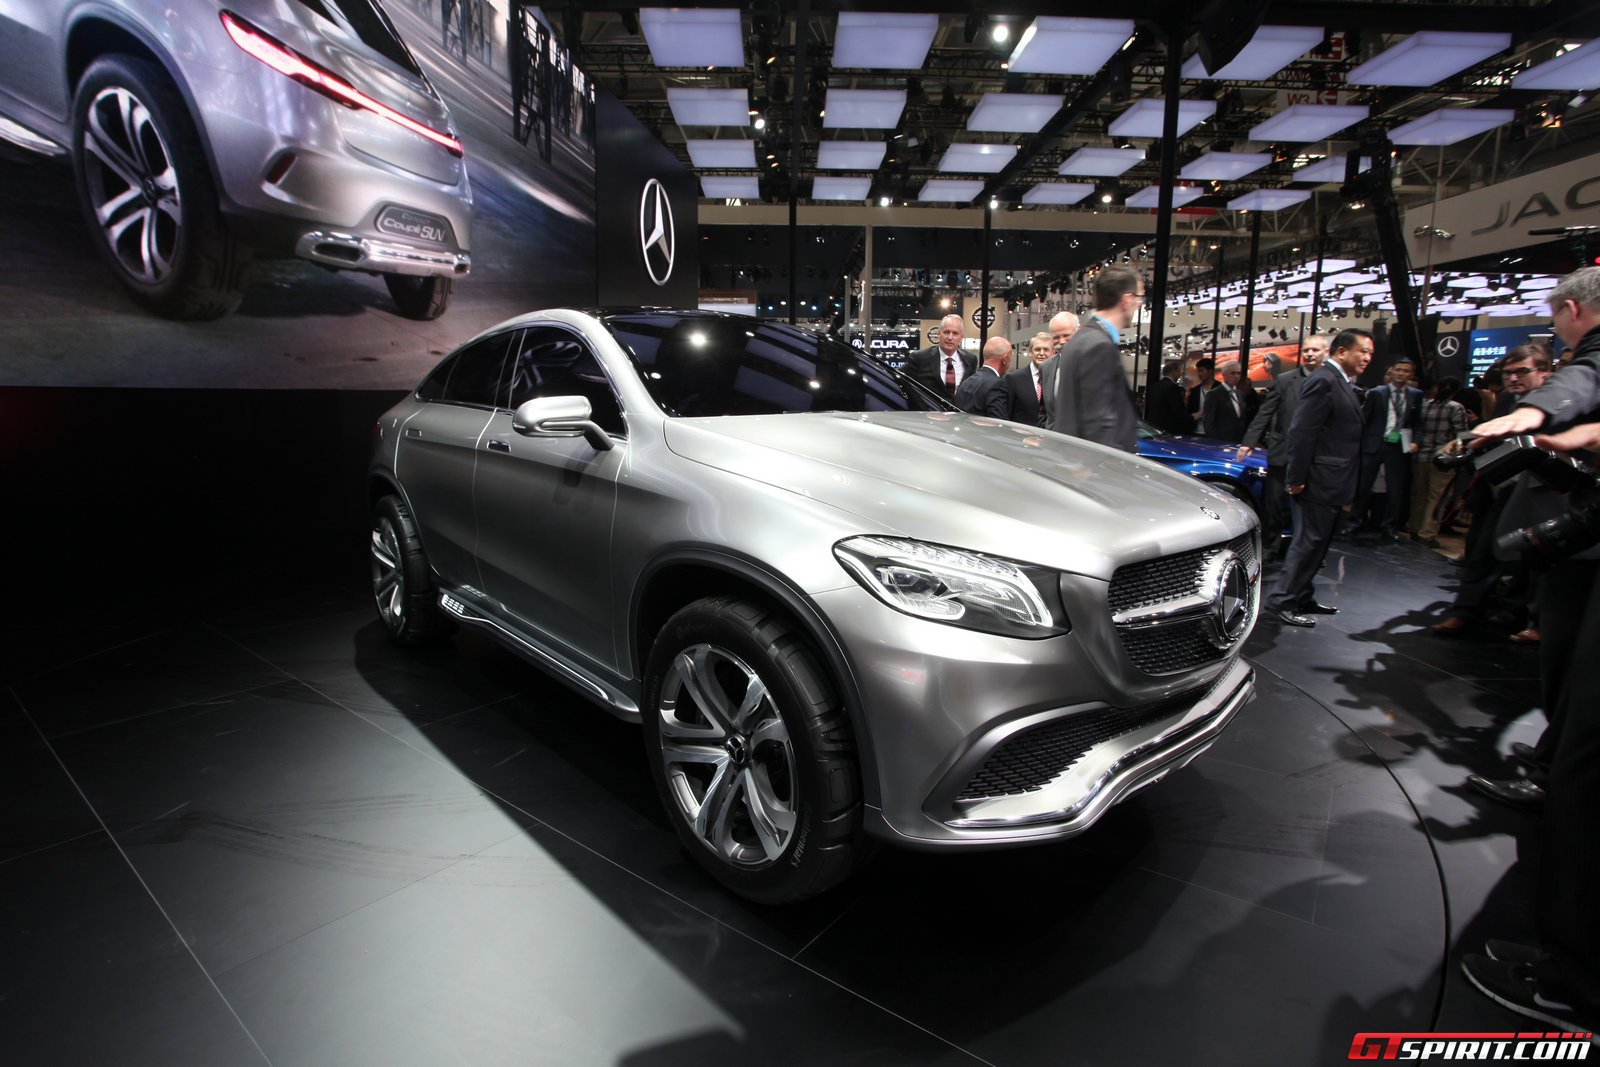 Mercedes benz considers separate suv line benzinsider for Mercedes benz suv coupe